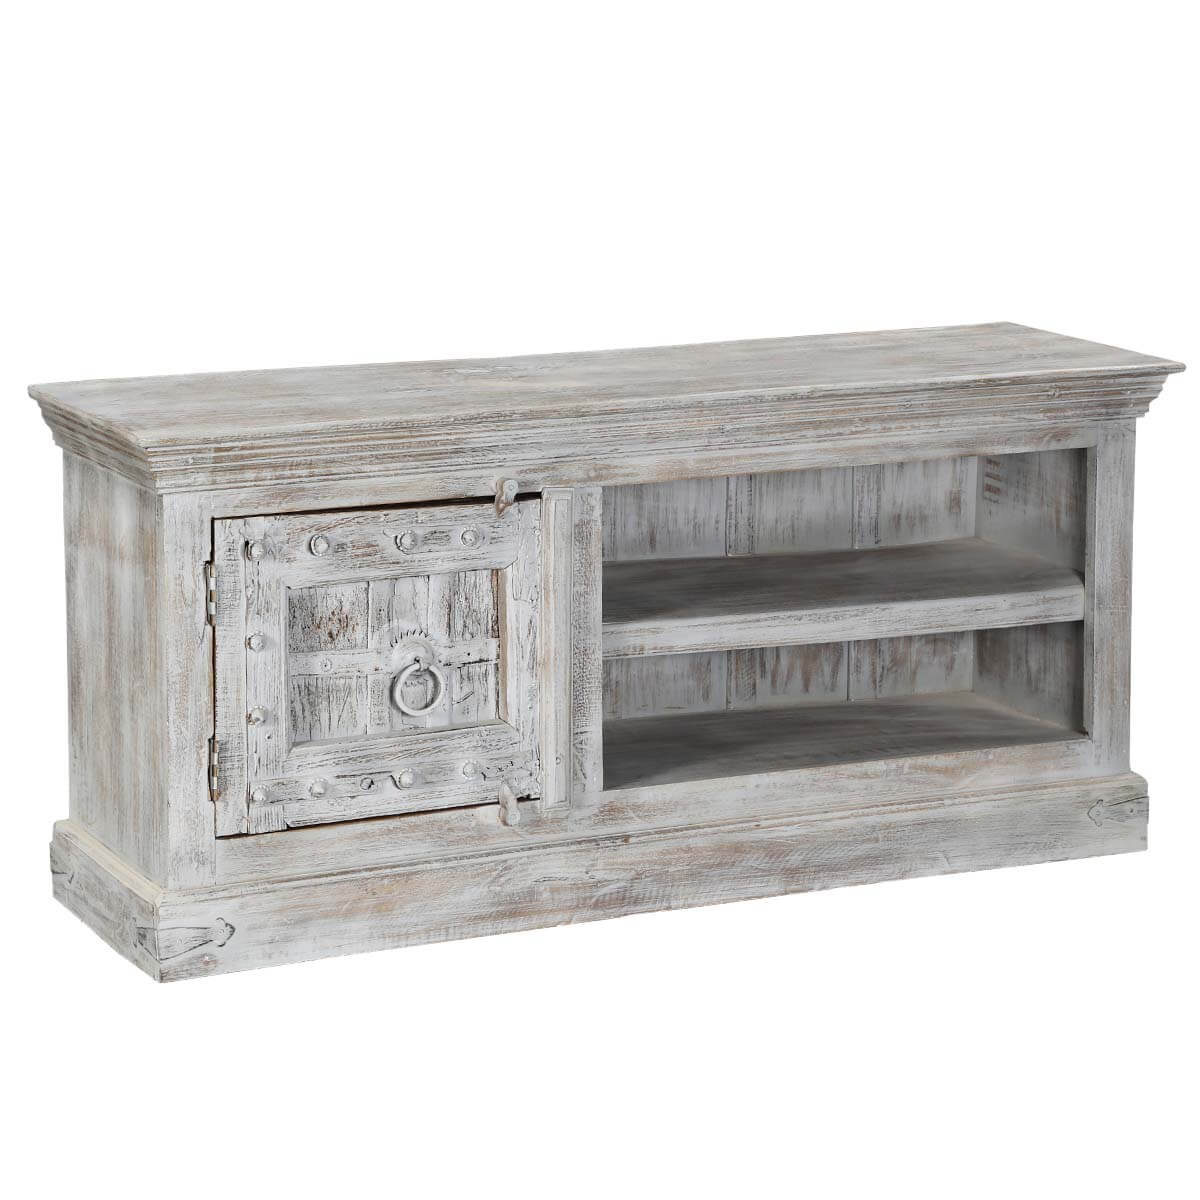 Attrayant Palazzo 59 Rustic Handcrafted Solid Wood Media Storage Console